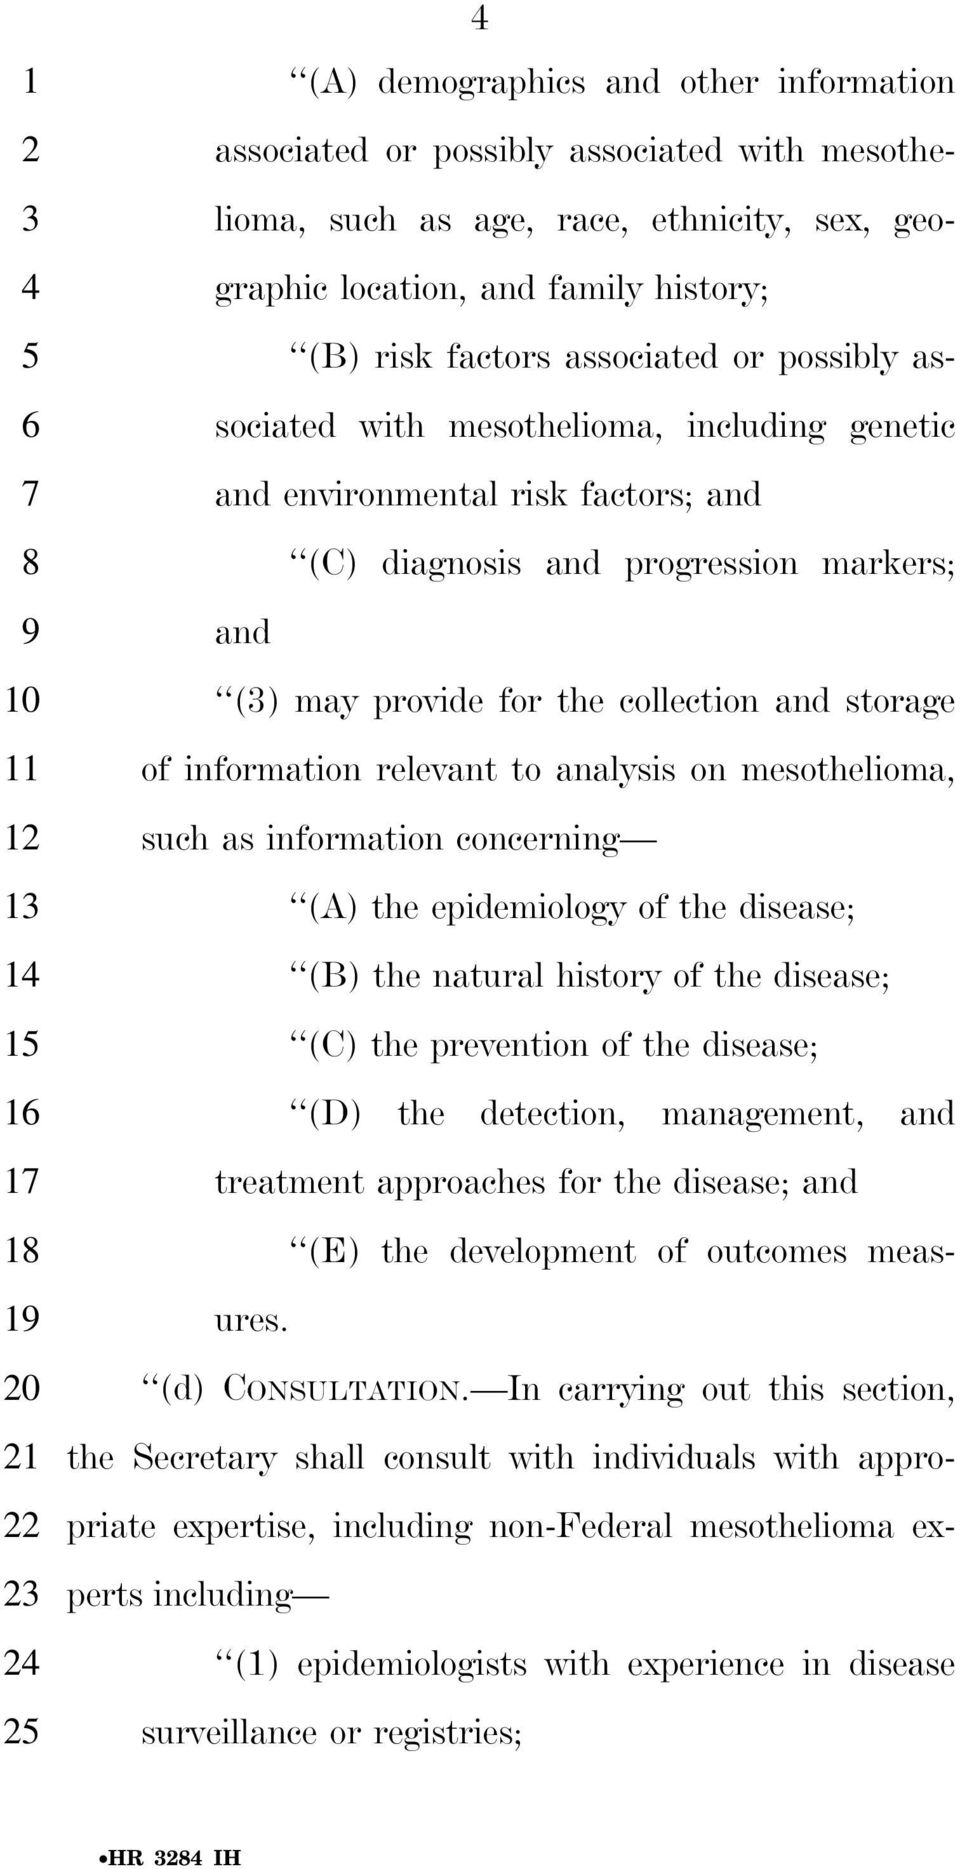 storage 11 of information relevant to analysis on mesothelioma, such as information concerning (A) the epidemiology of the disease; (B) the natural history of the disease; 1 (C) the prevention of the